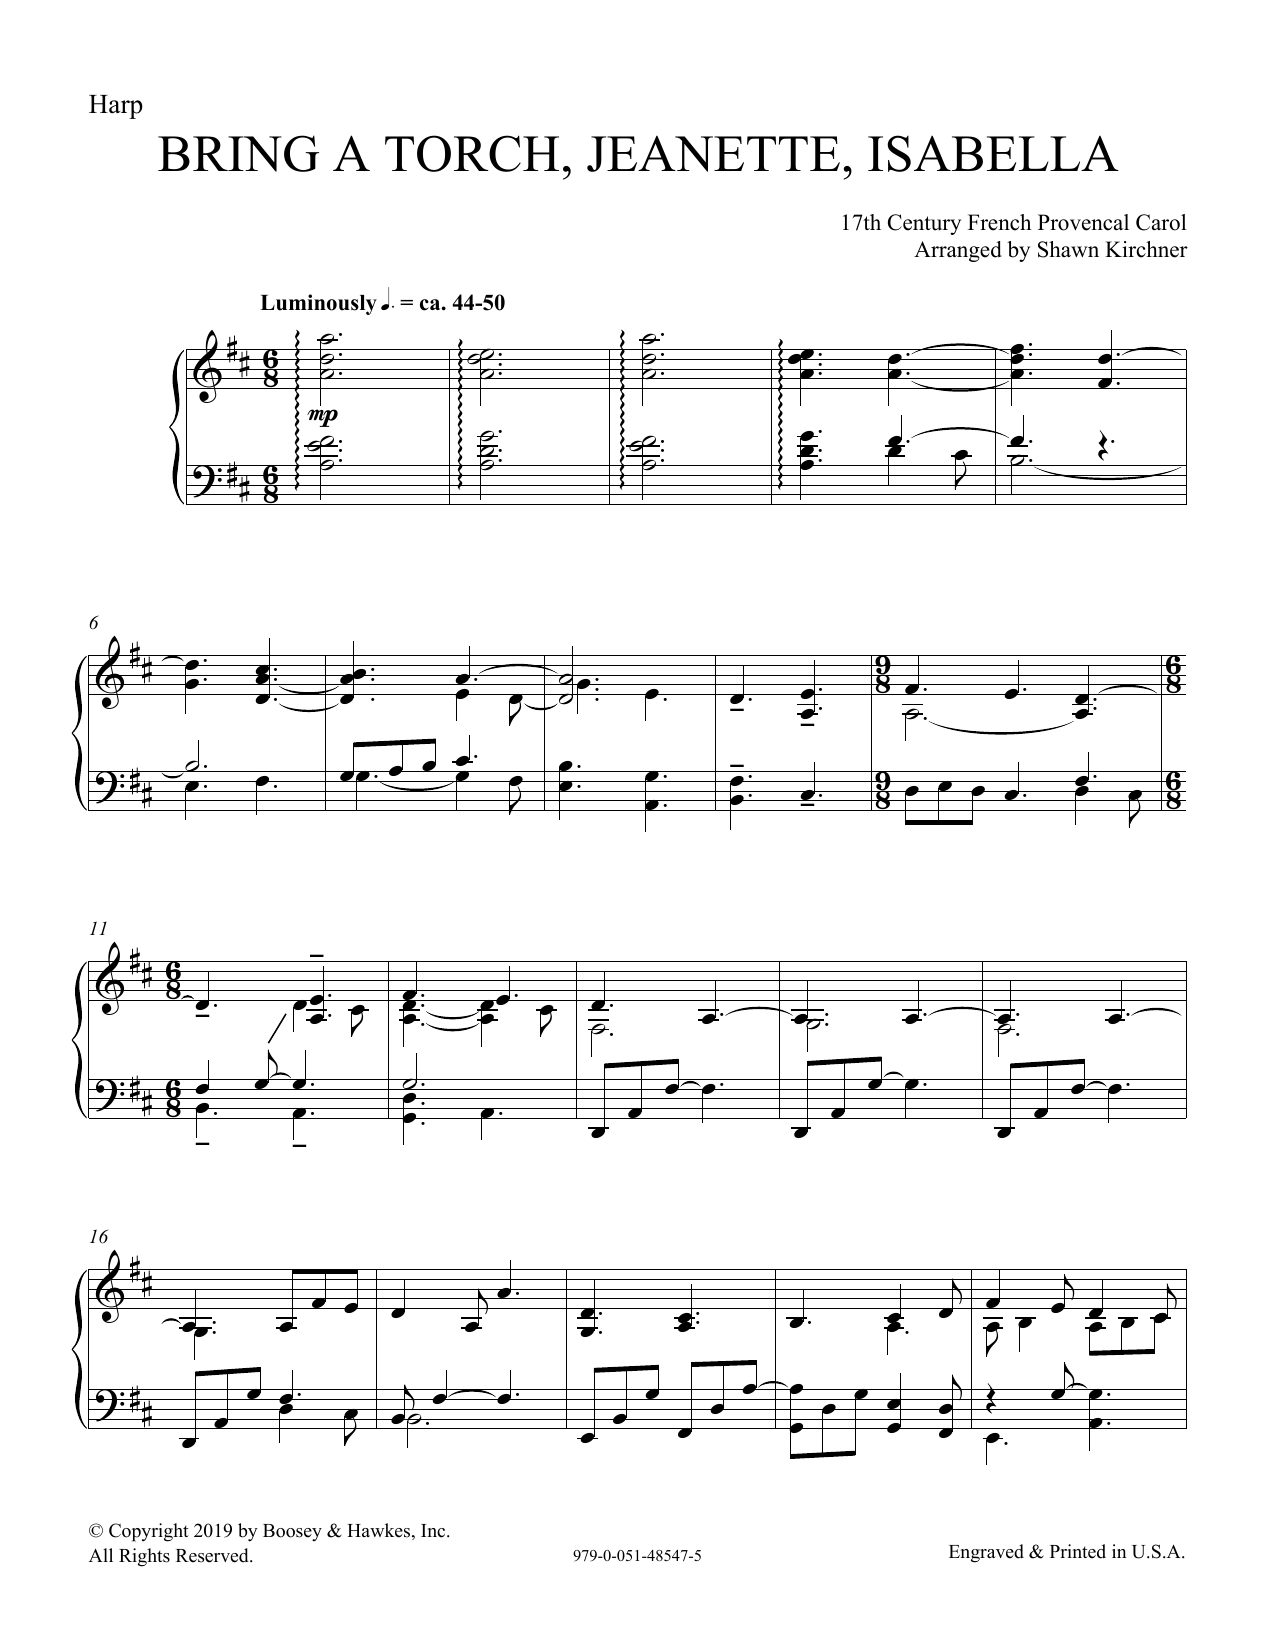 Download 17th Century French Provencal 'Bring a Torch, Jeanette, Isabella (arr. Shawn Kirchner) - Harp' Digital Sheet Music Notes & Chords and start playing in minutes